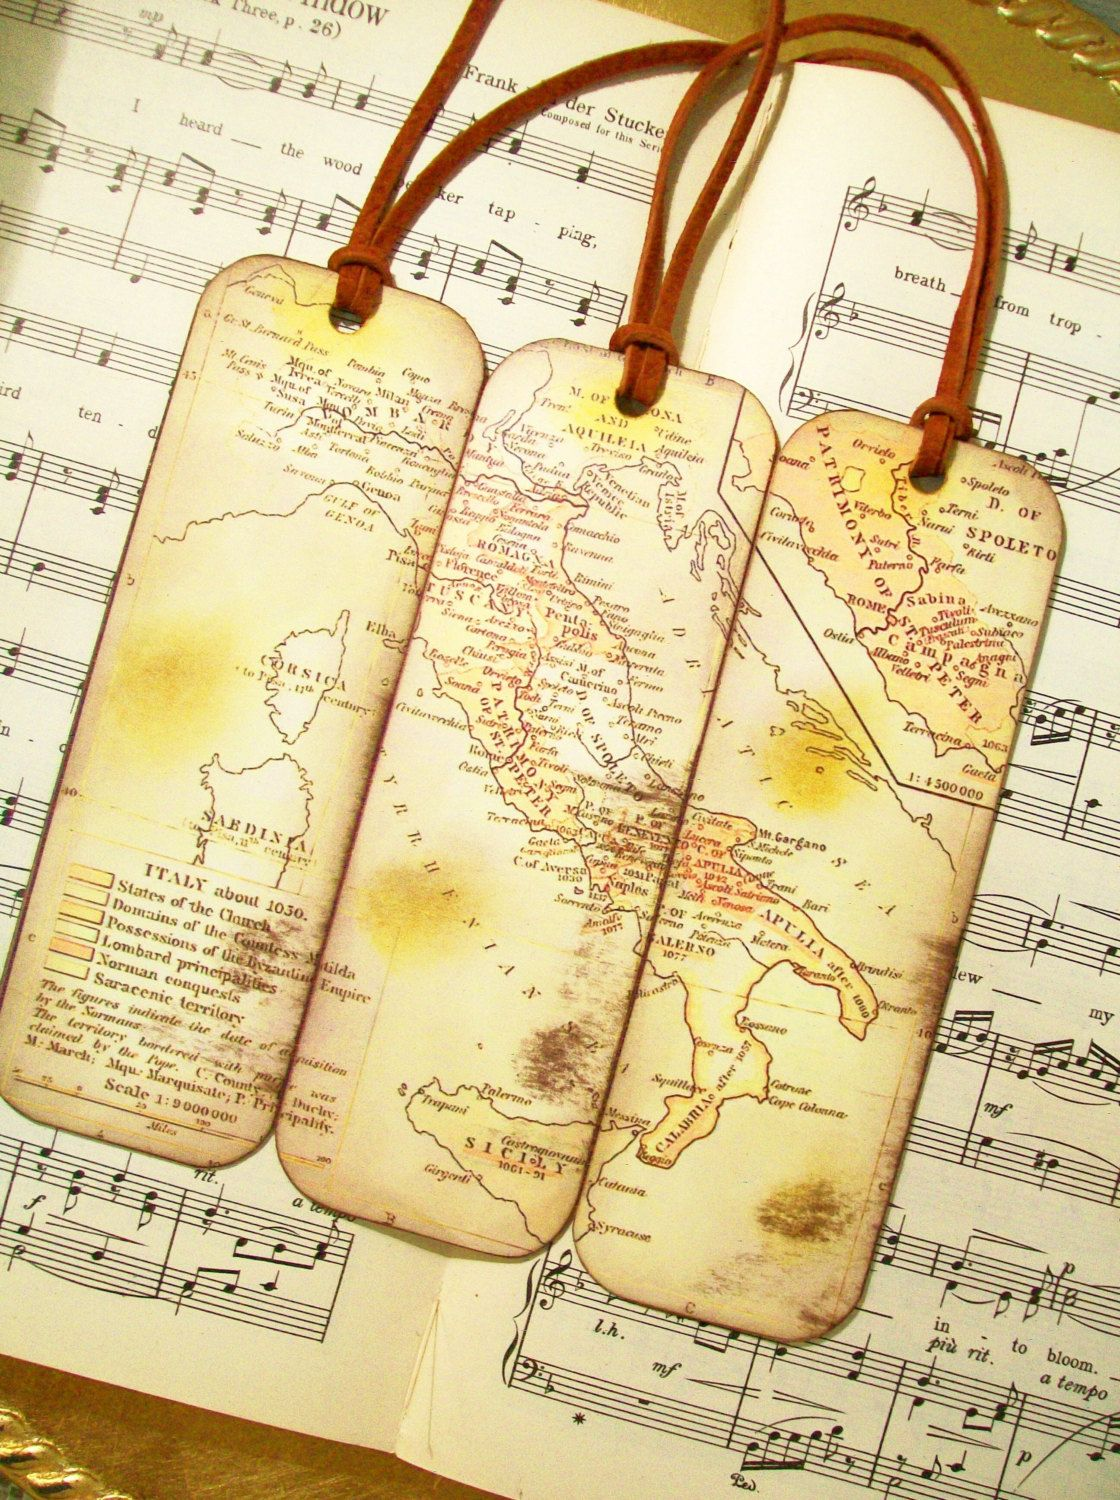 Italy map bookmarks historical italy map bookmarks set of 3 italy map of italy gifts for men historical italy map bookmarks set of italy old world map bookmarks for men gifts for him by prayernotes on etsy gumiabroncs Images